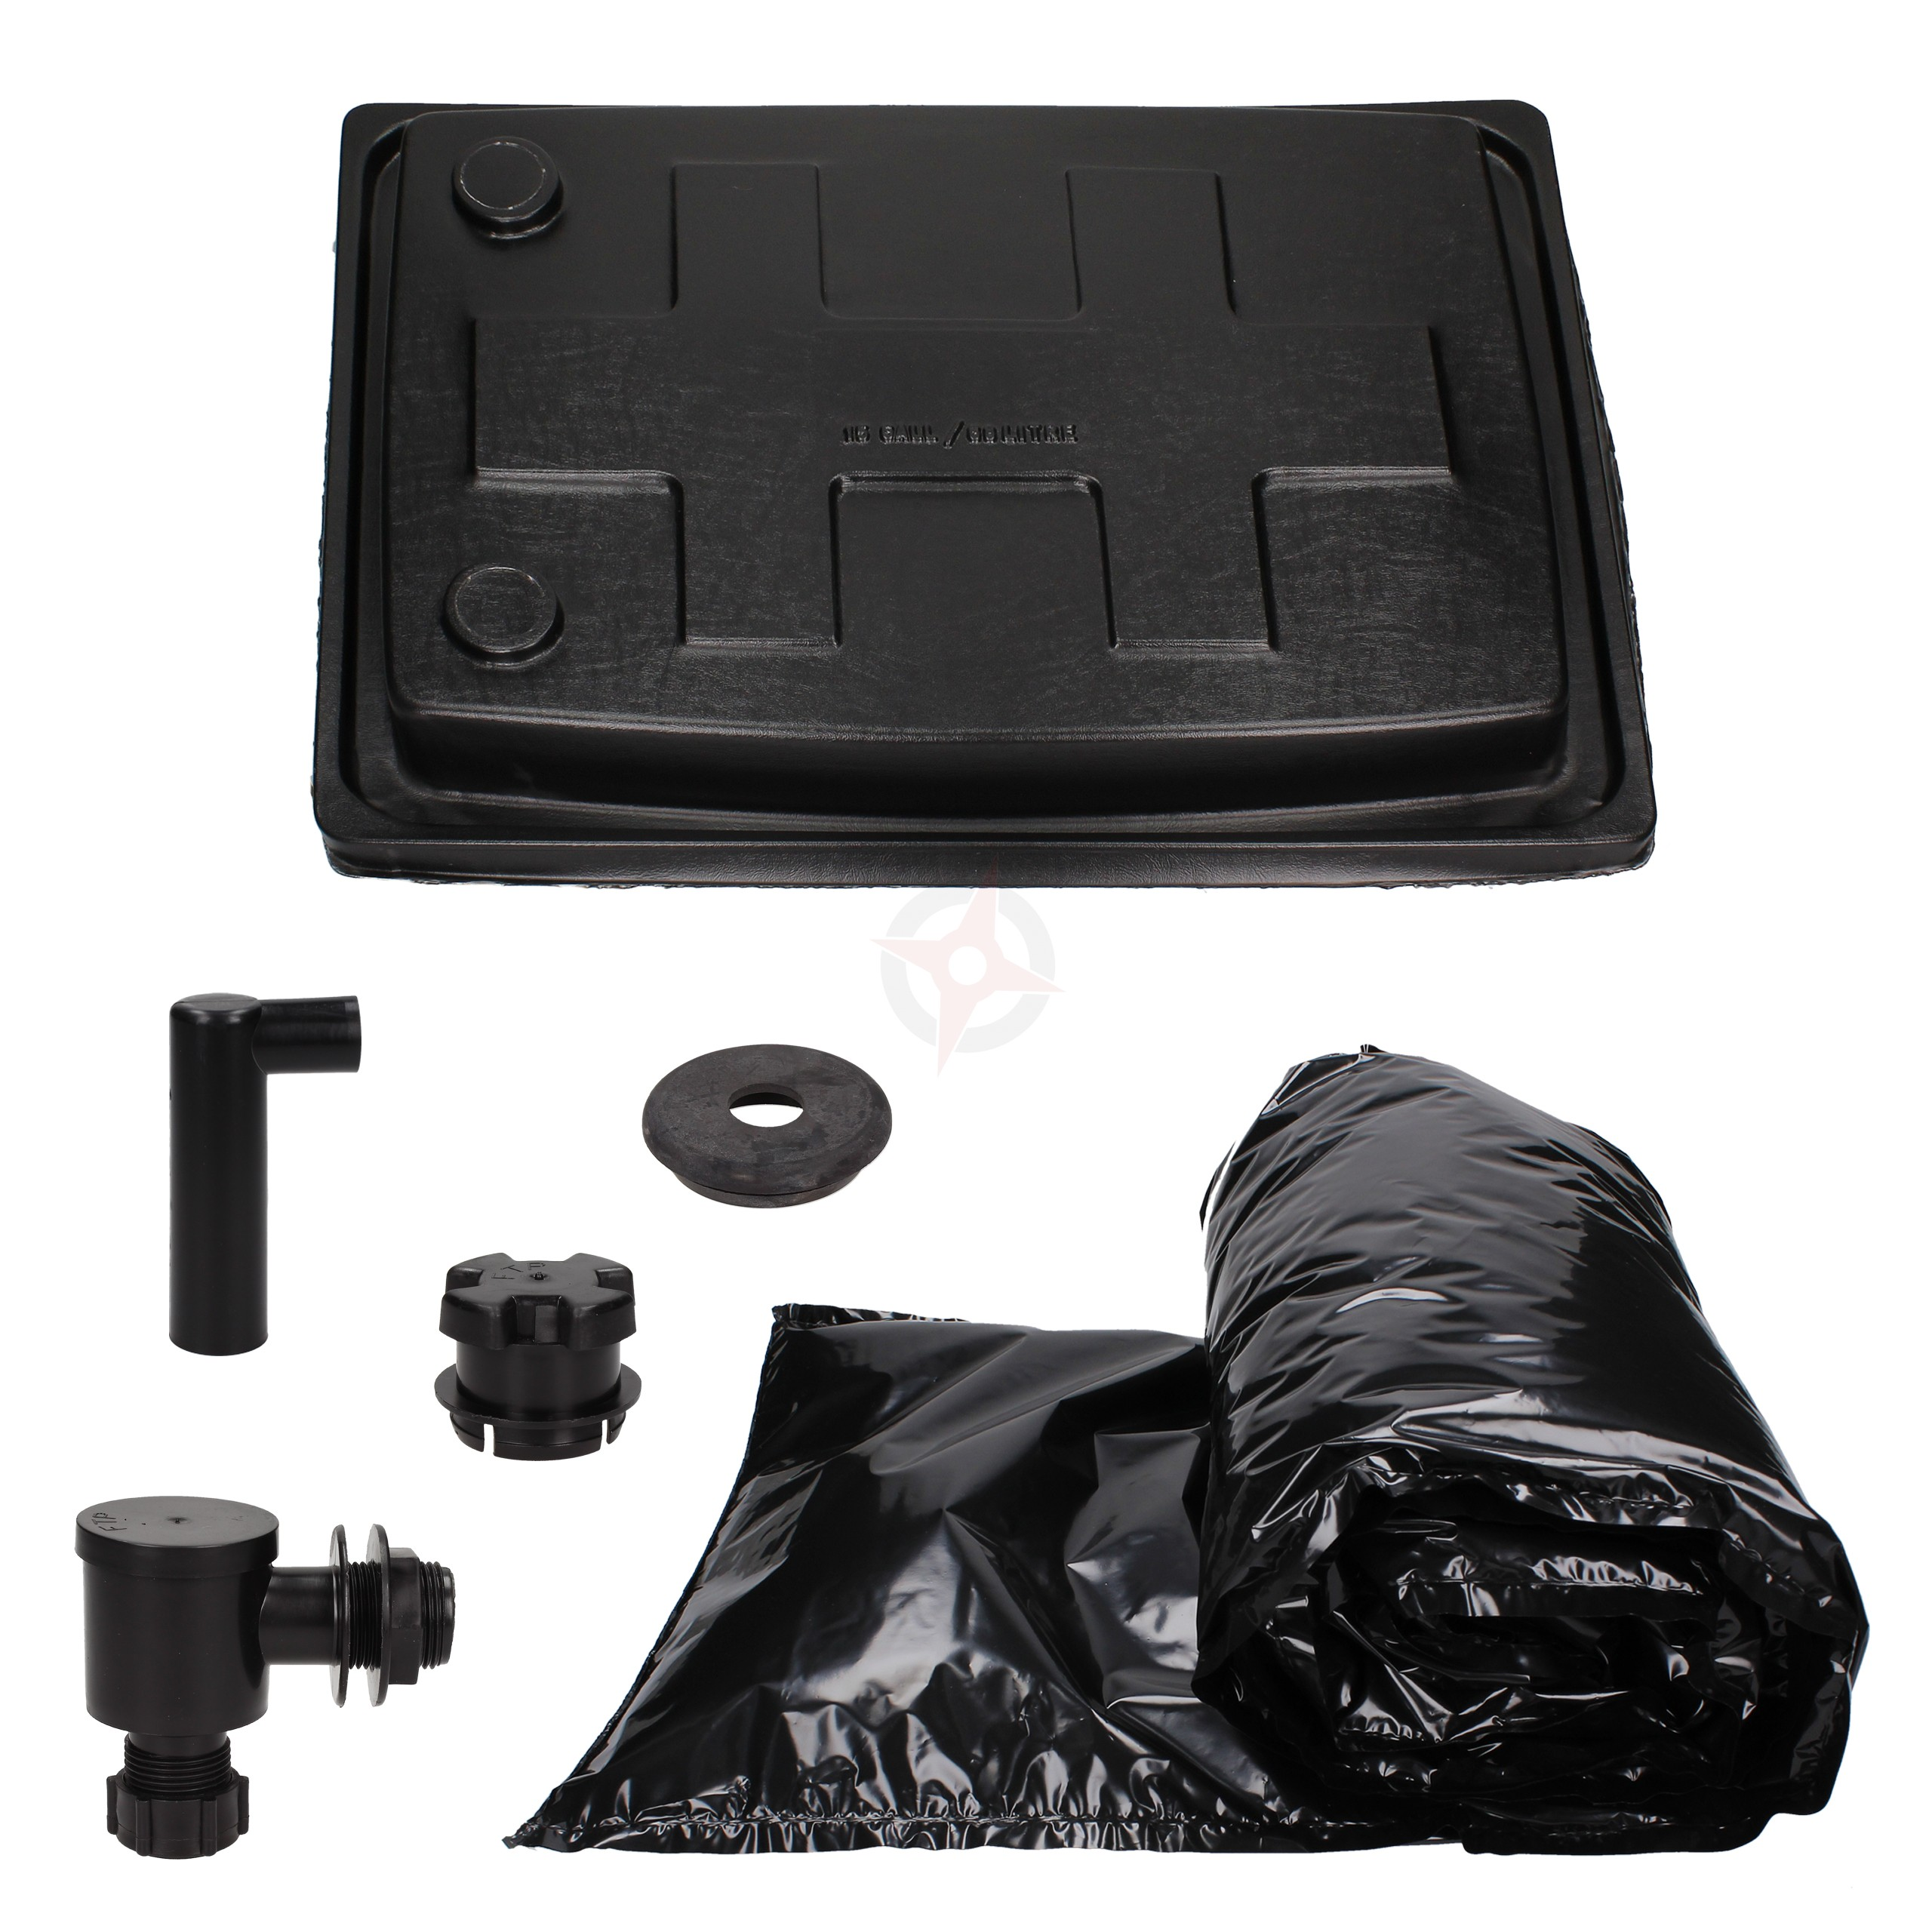 Byelaw 30 kit for a Rectangular 40 Gallon Loft Tank